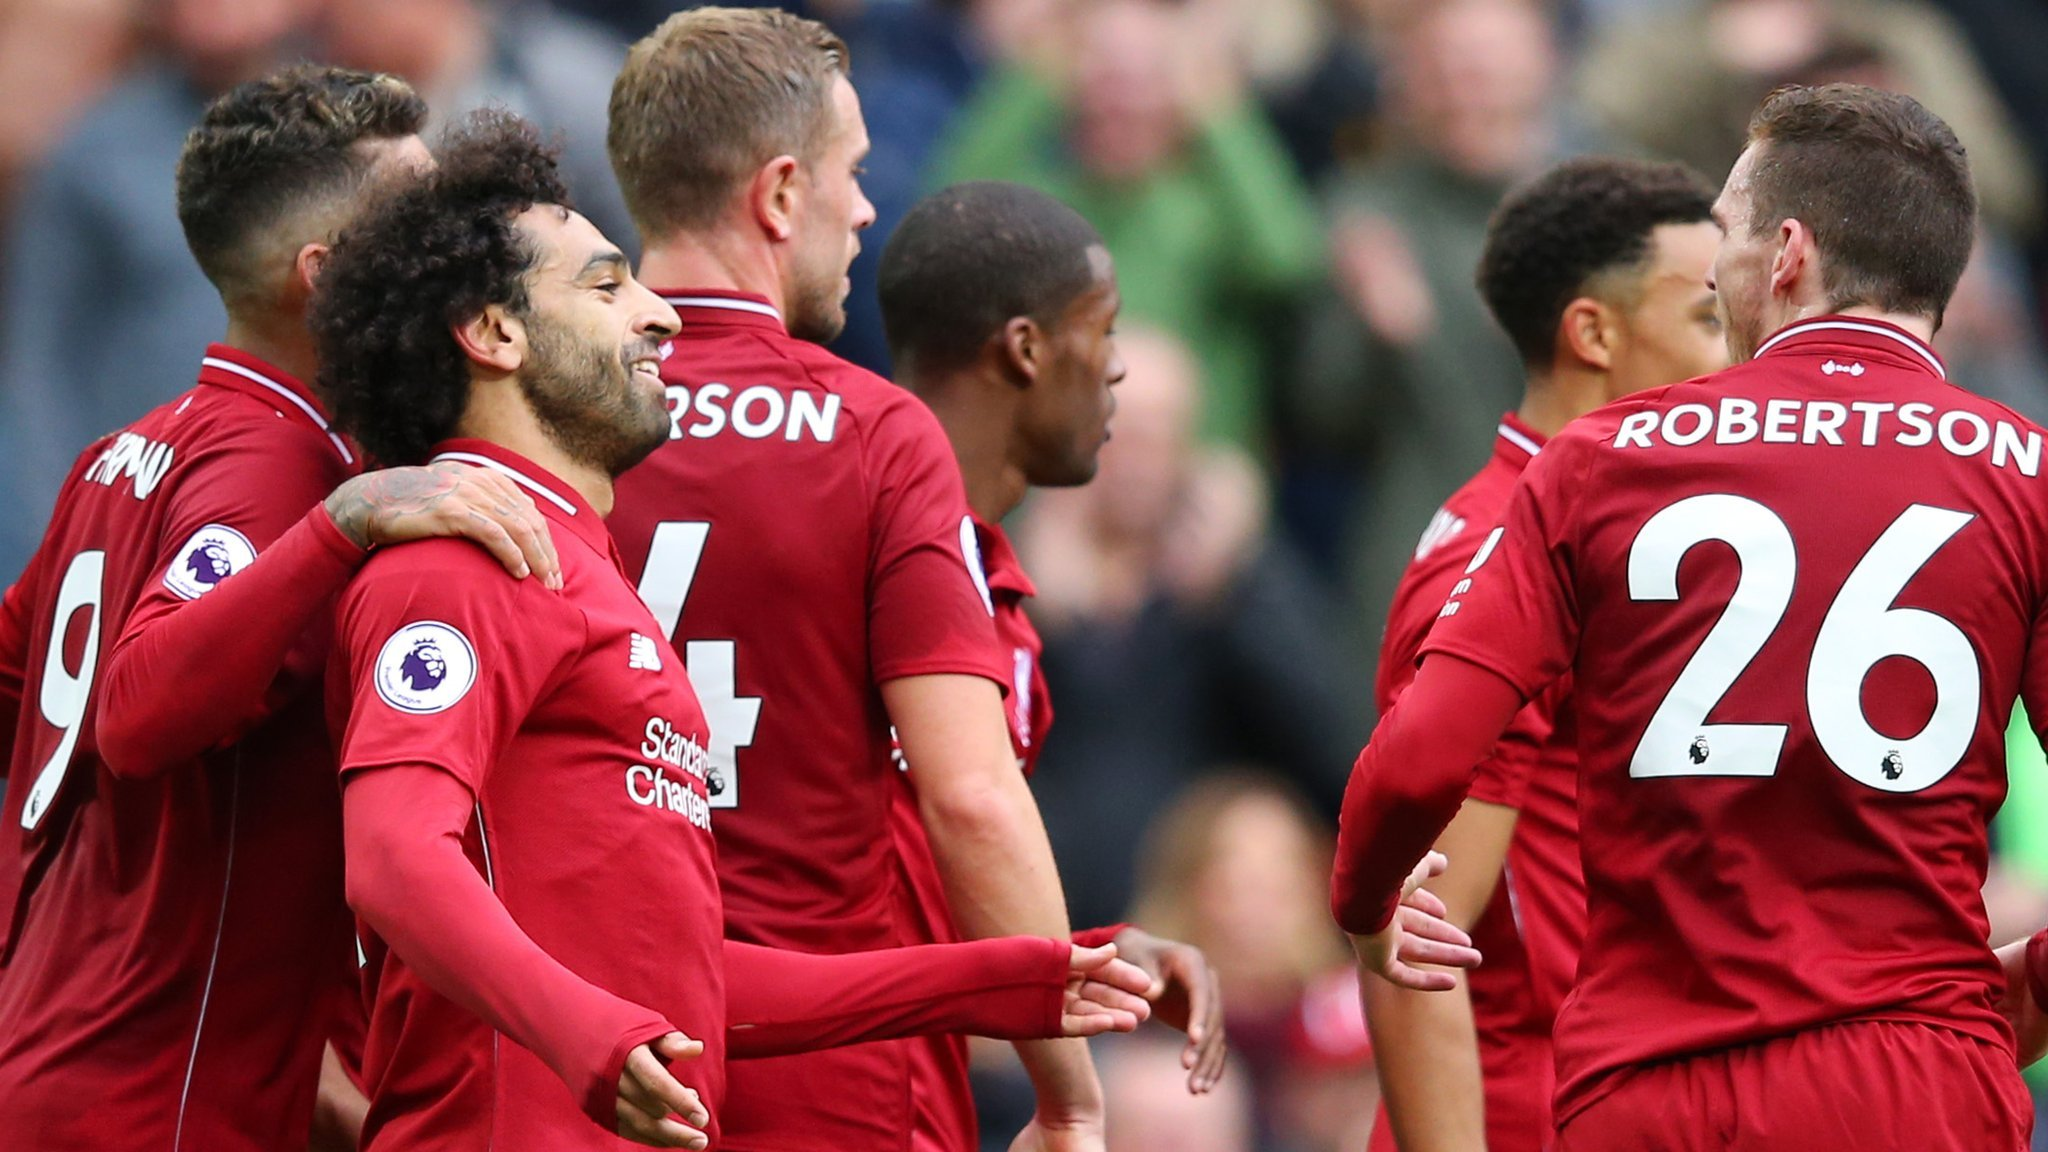 Liverpool 3-0 Southampton: Reds ease past Saints for seventh straight win